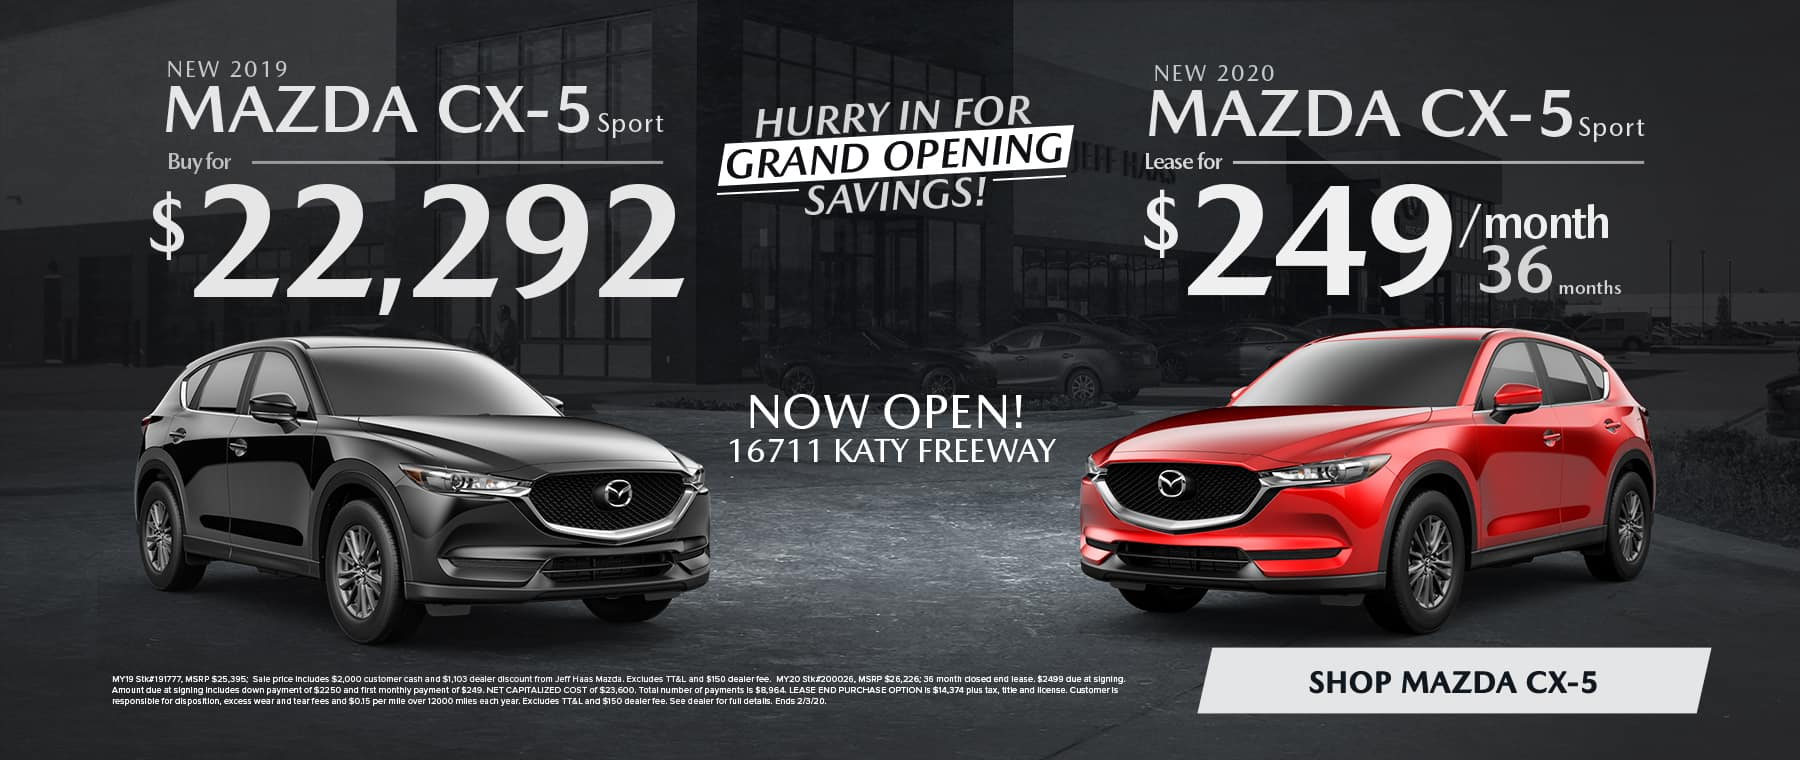 New 2019 MAZDA CX-5 Sport  Buy for 22,292 New 2020 MAZDA CX-5 Sport Lease for $249/mo for 36 mo